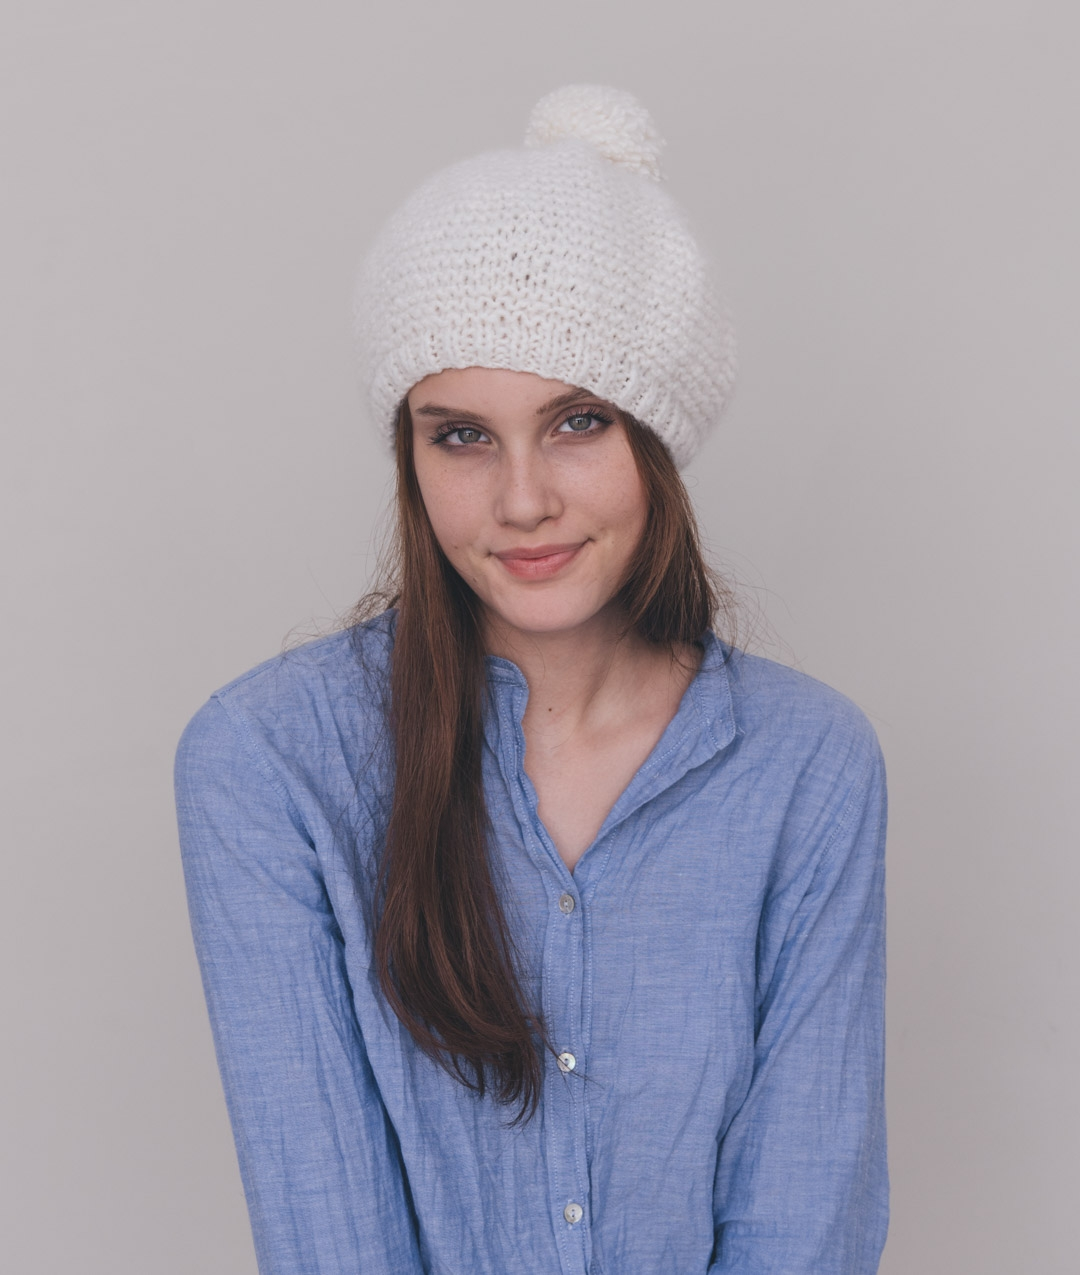 Hats and Beanies - Wool - SUGAR MILK BERET - 1